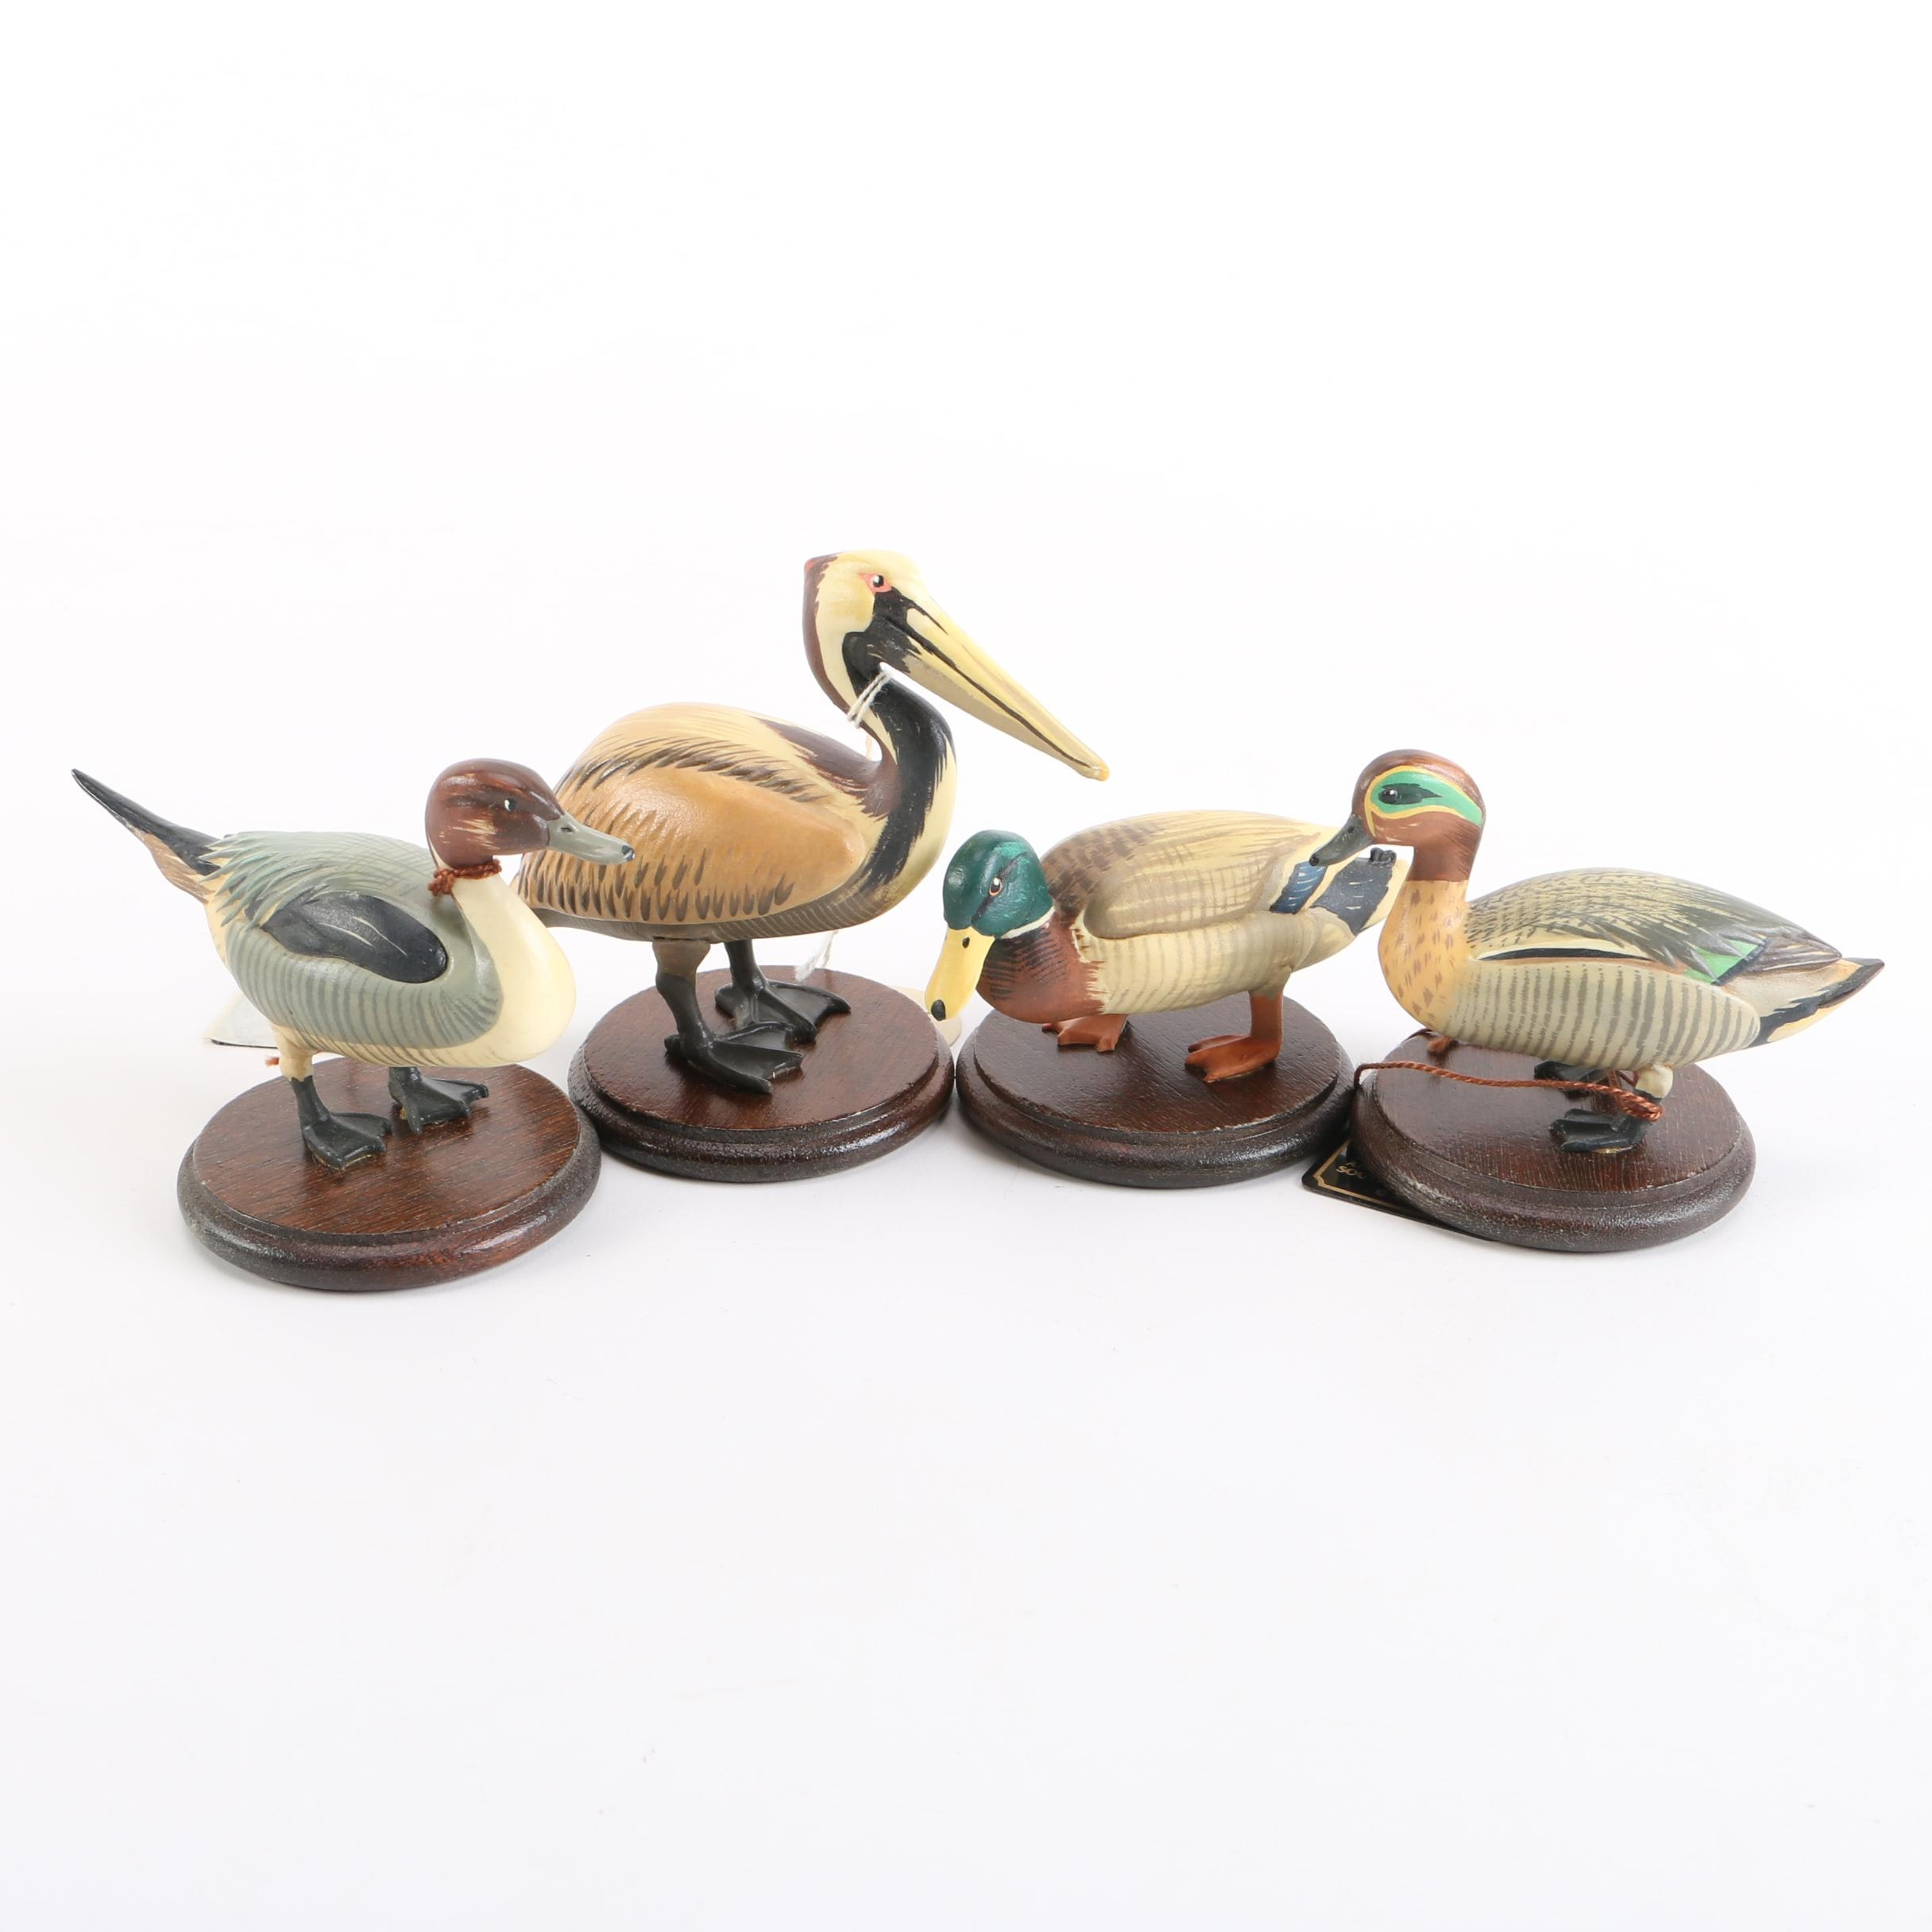 Anri Duck Figurines After Helmut Diller